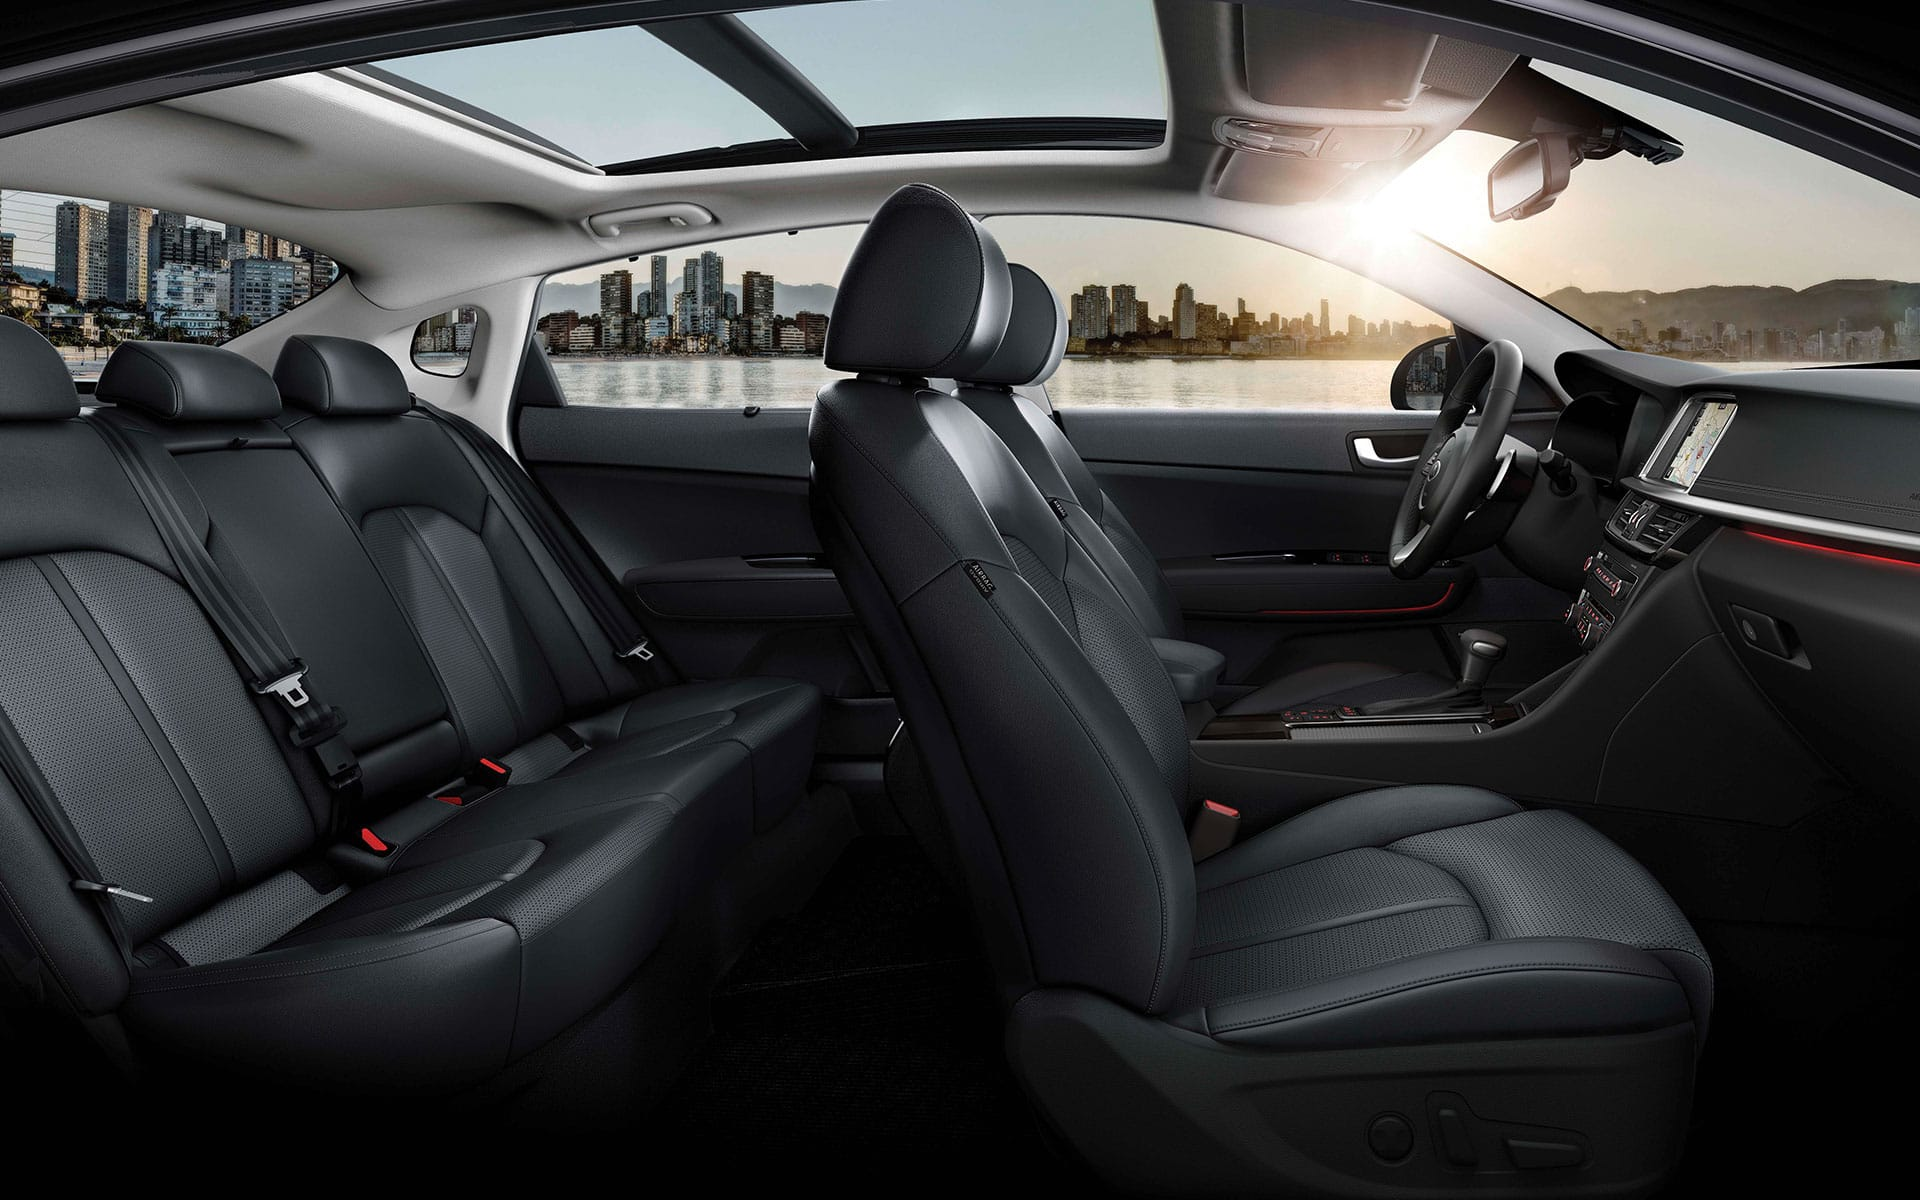 Kia Optima refined interior high-quality leather